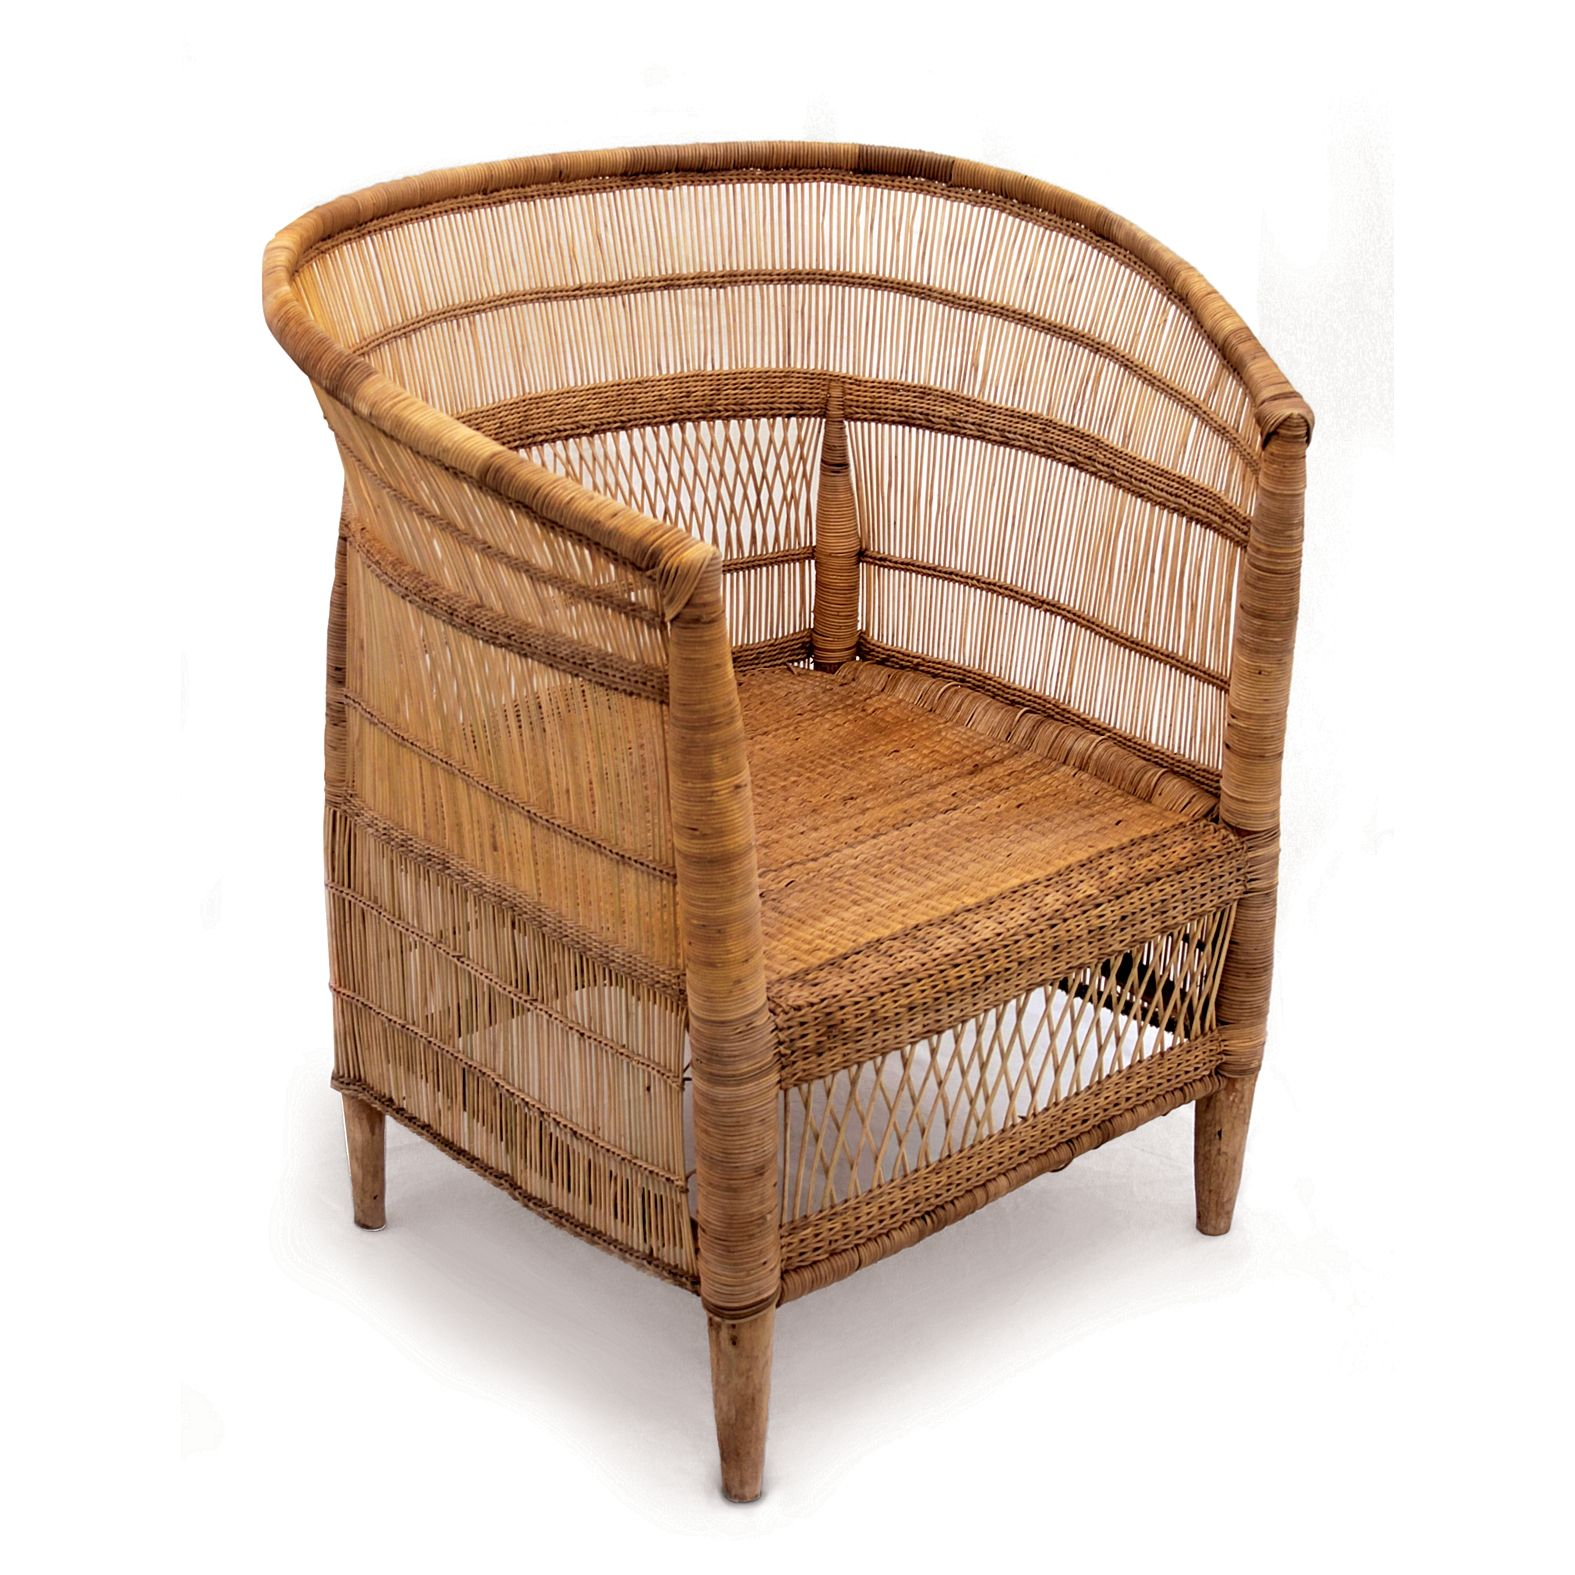 handwoven Malawi bucket chair doesn t look fy but would love